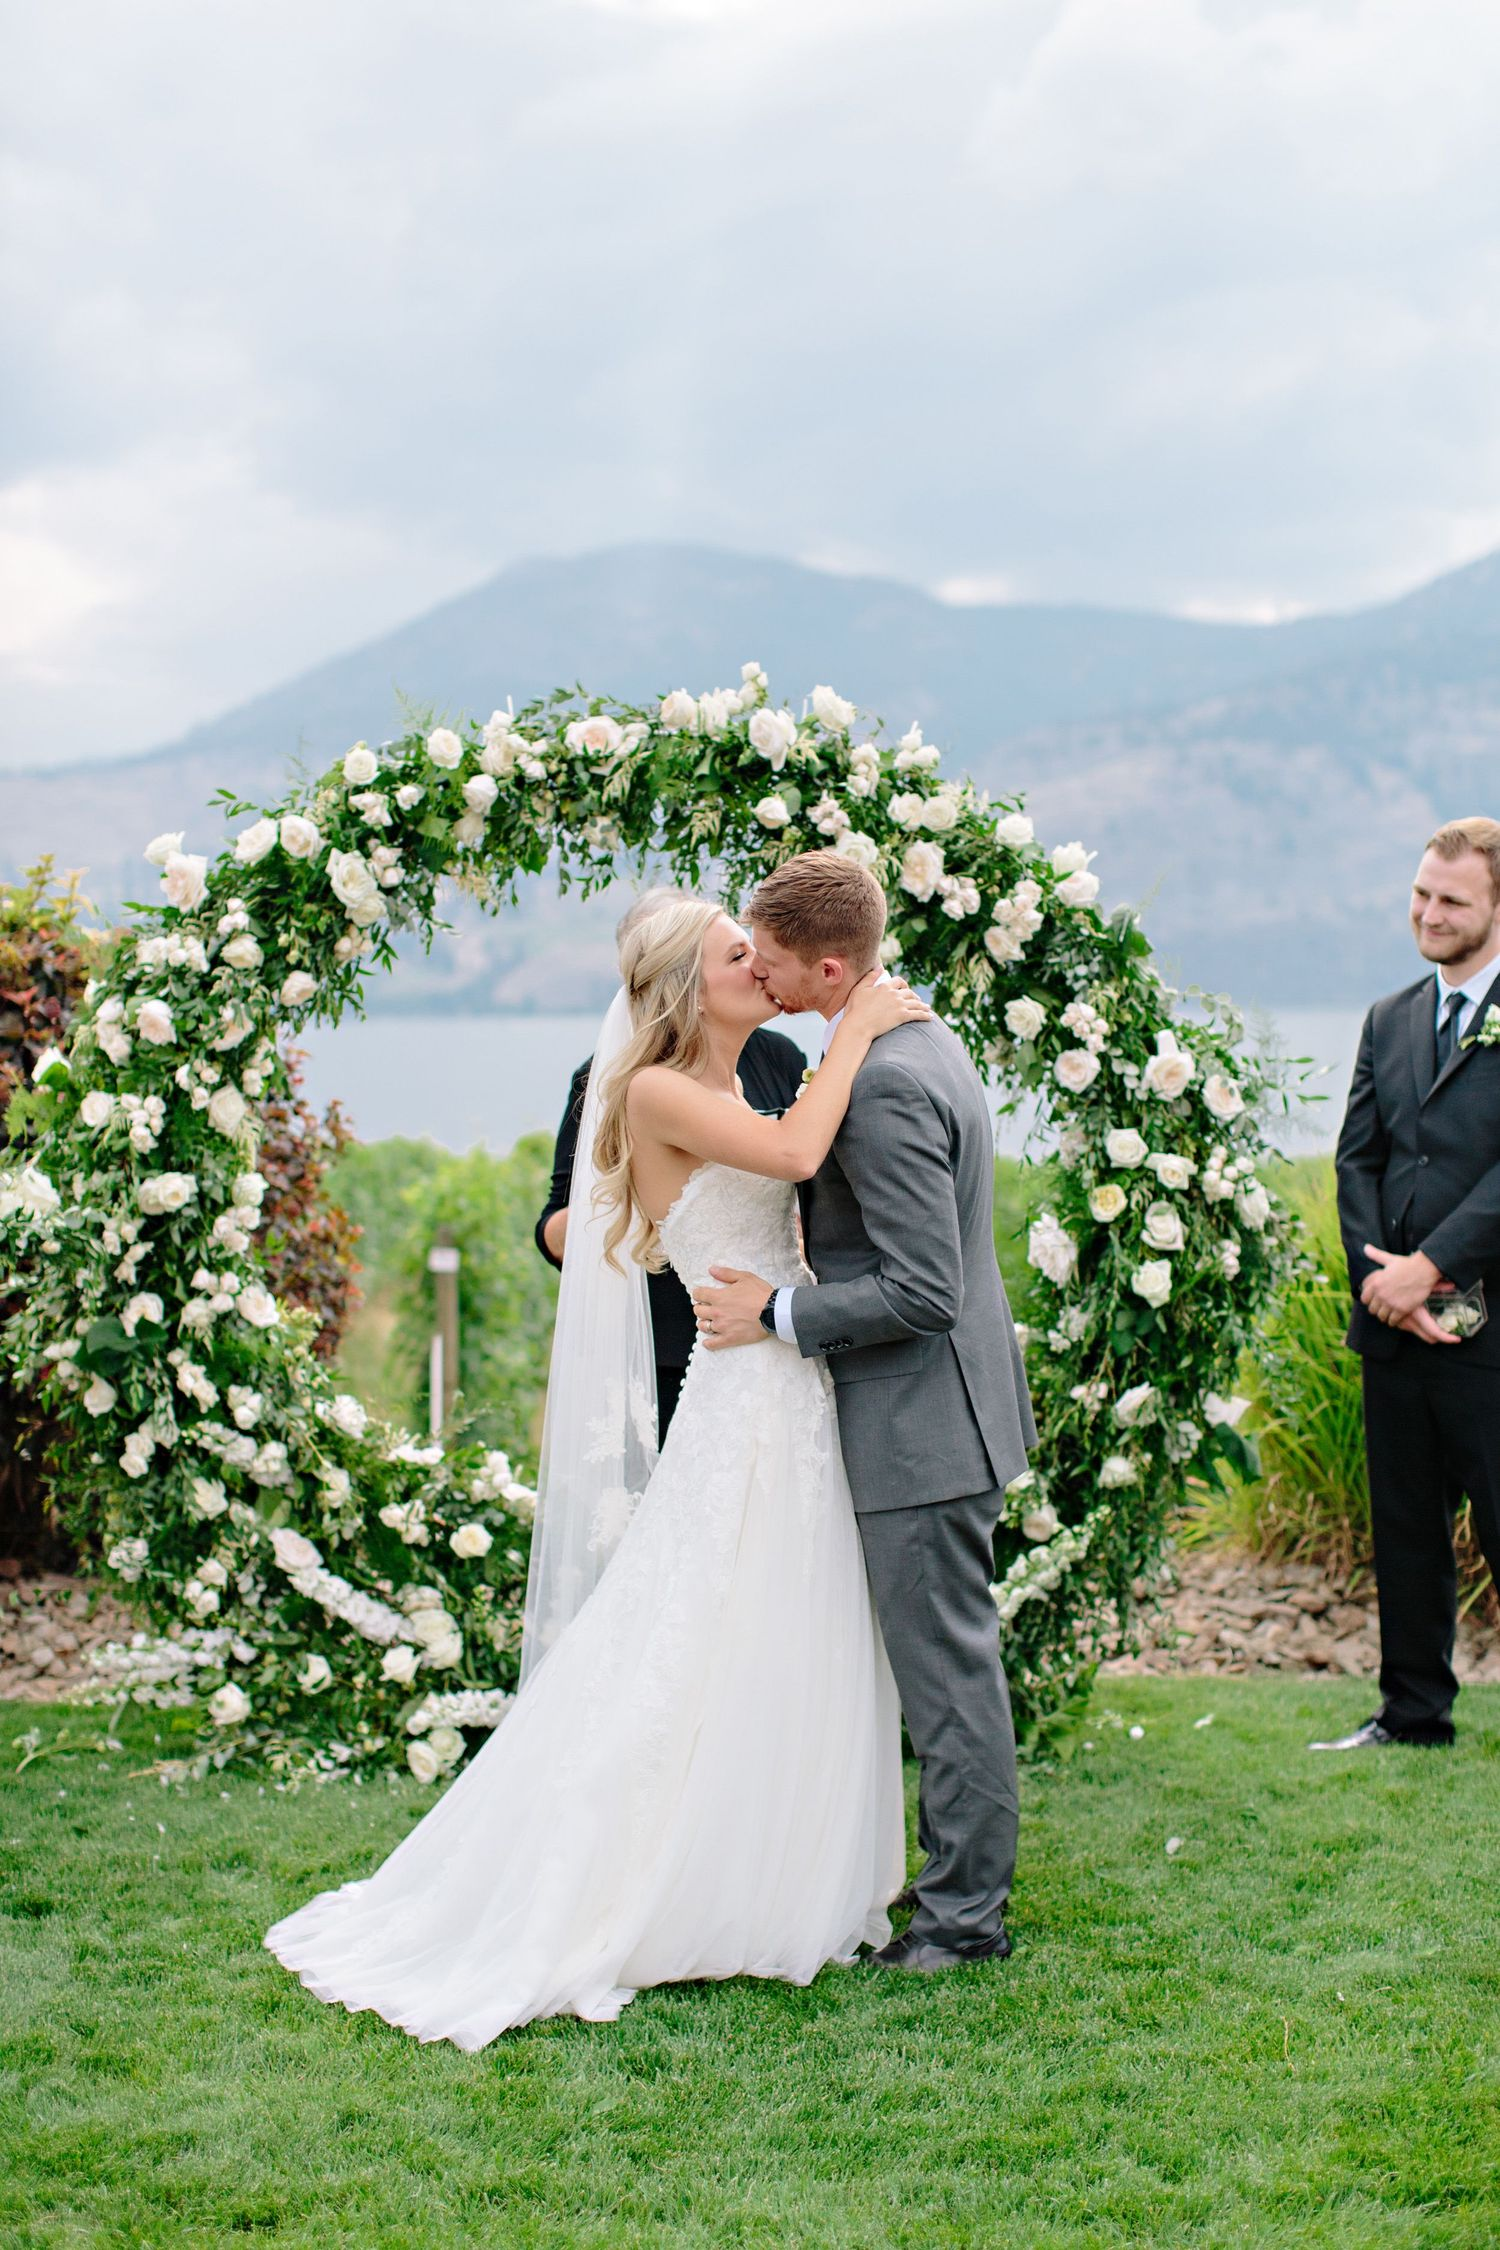 first kiss with round arch with white roses and greenery